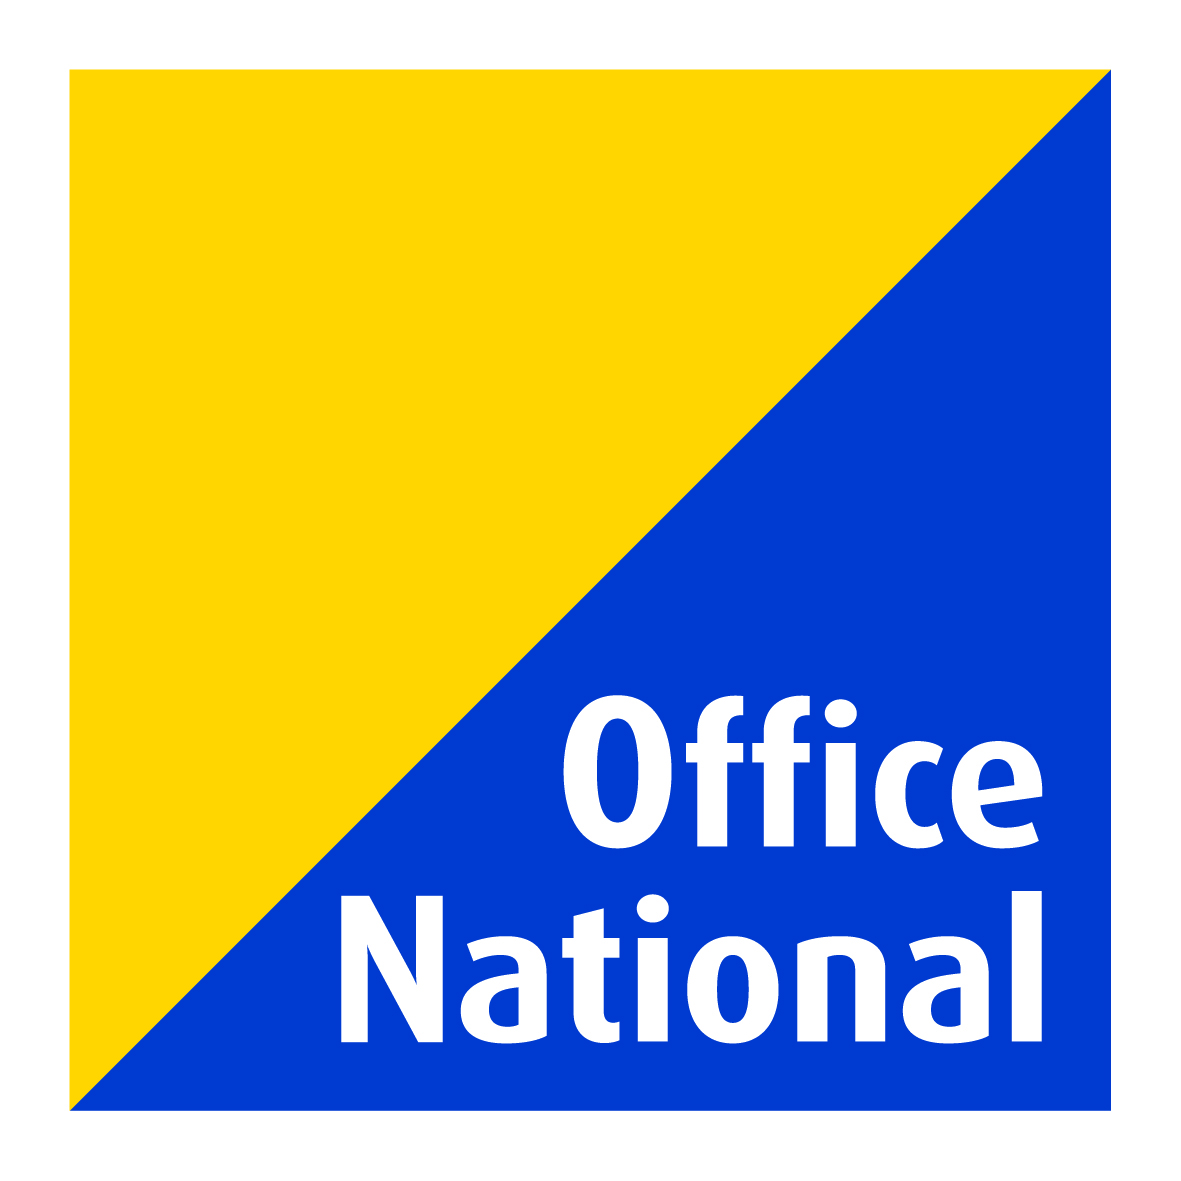 Office national wikipedia for Office logo